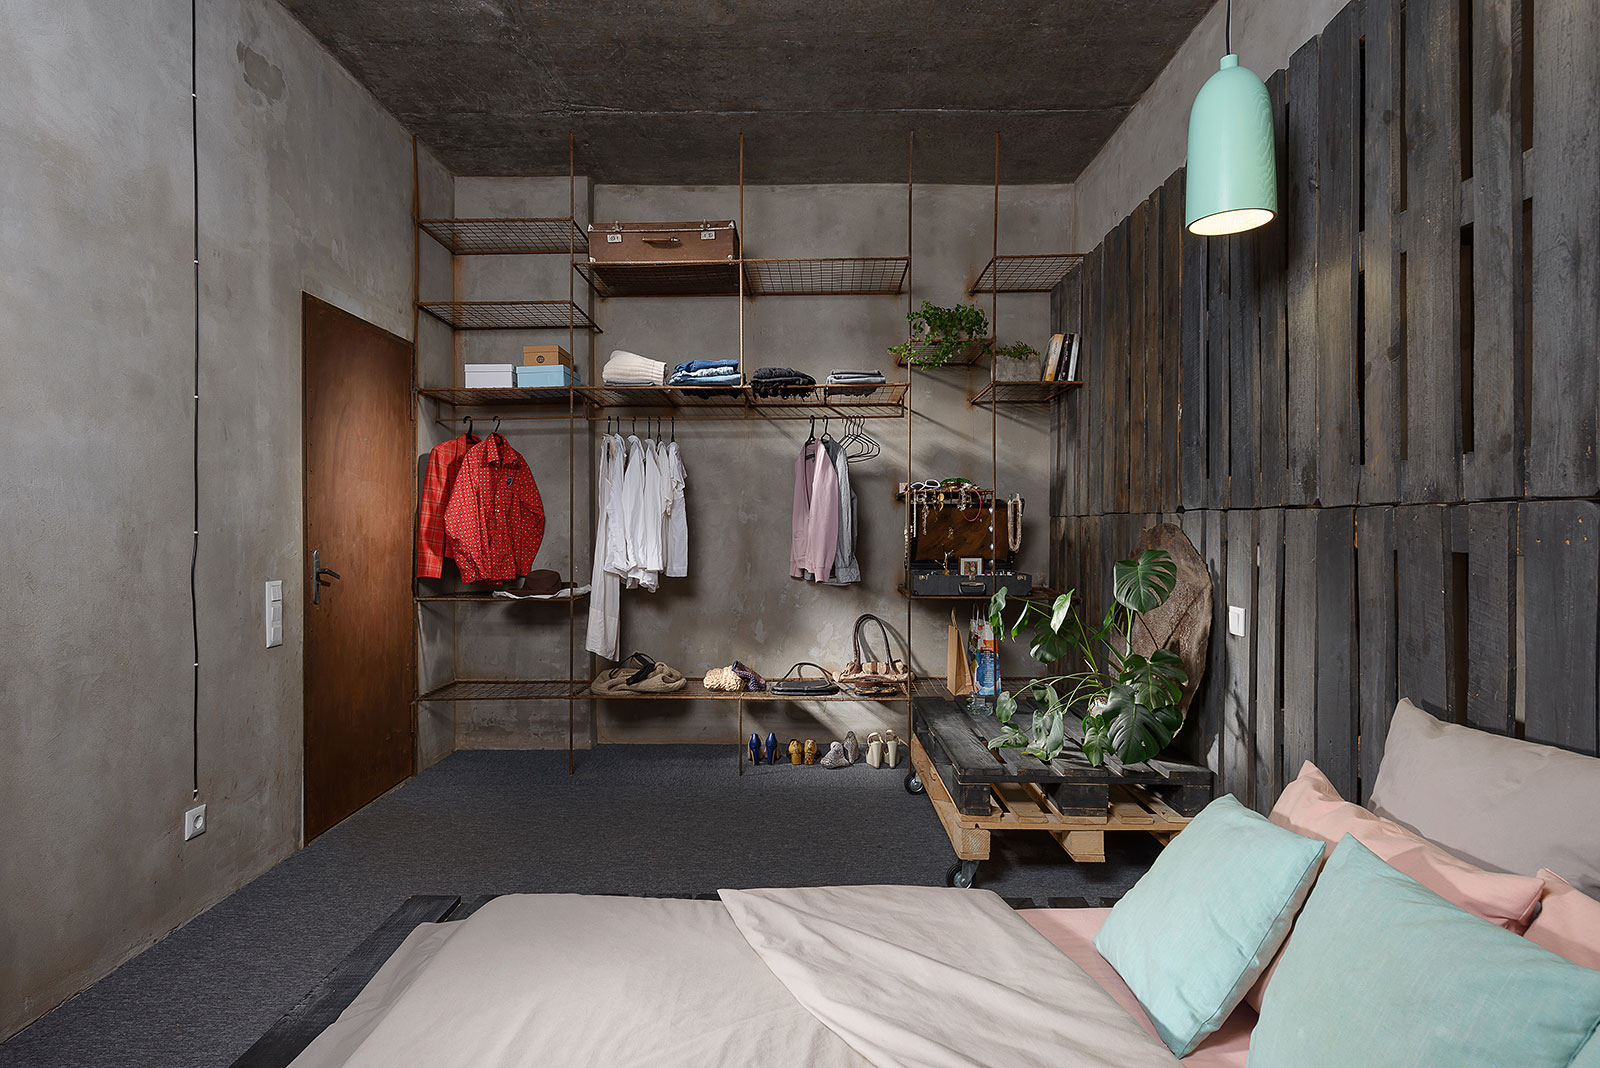 Industrial style bedroom - wall with shelving system